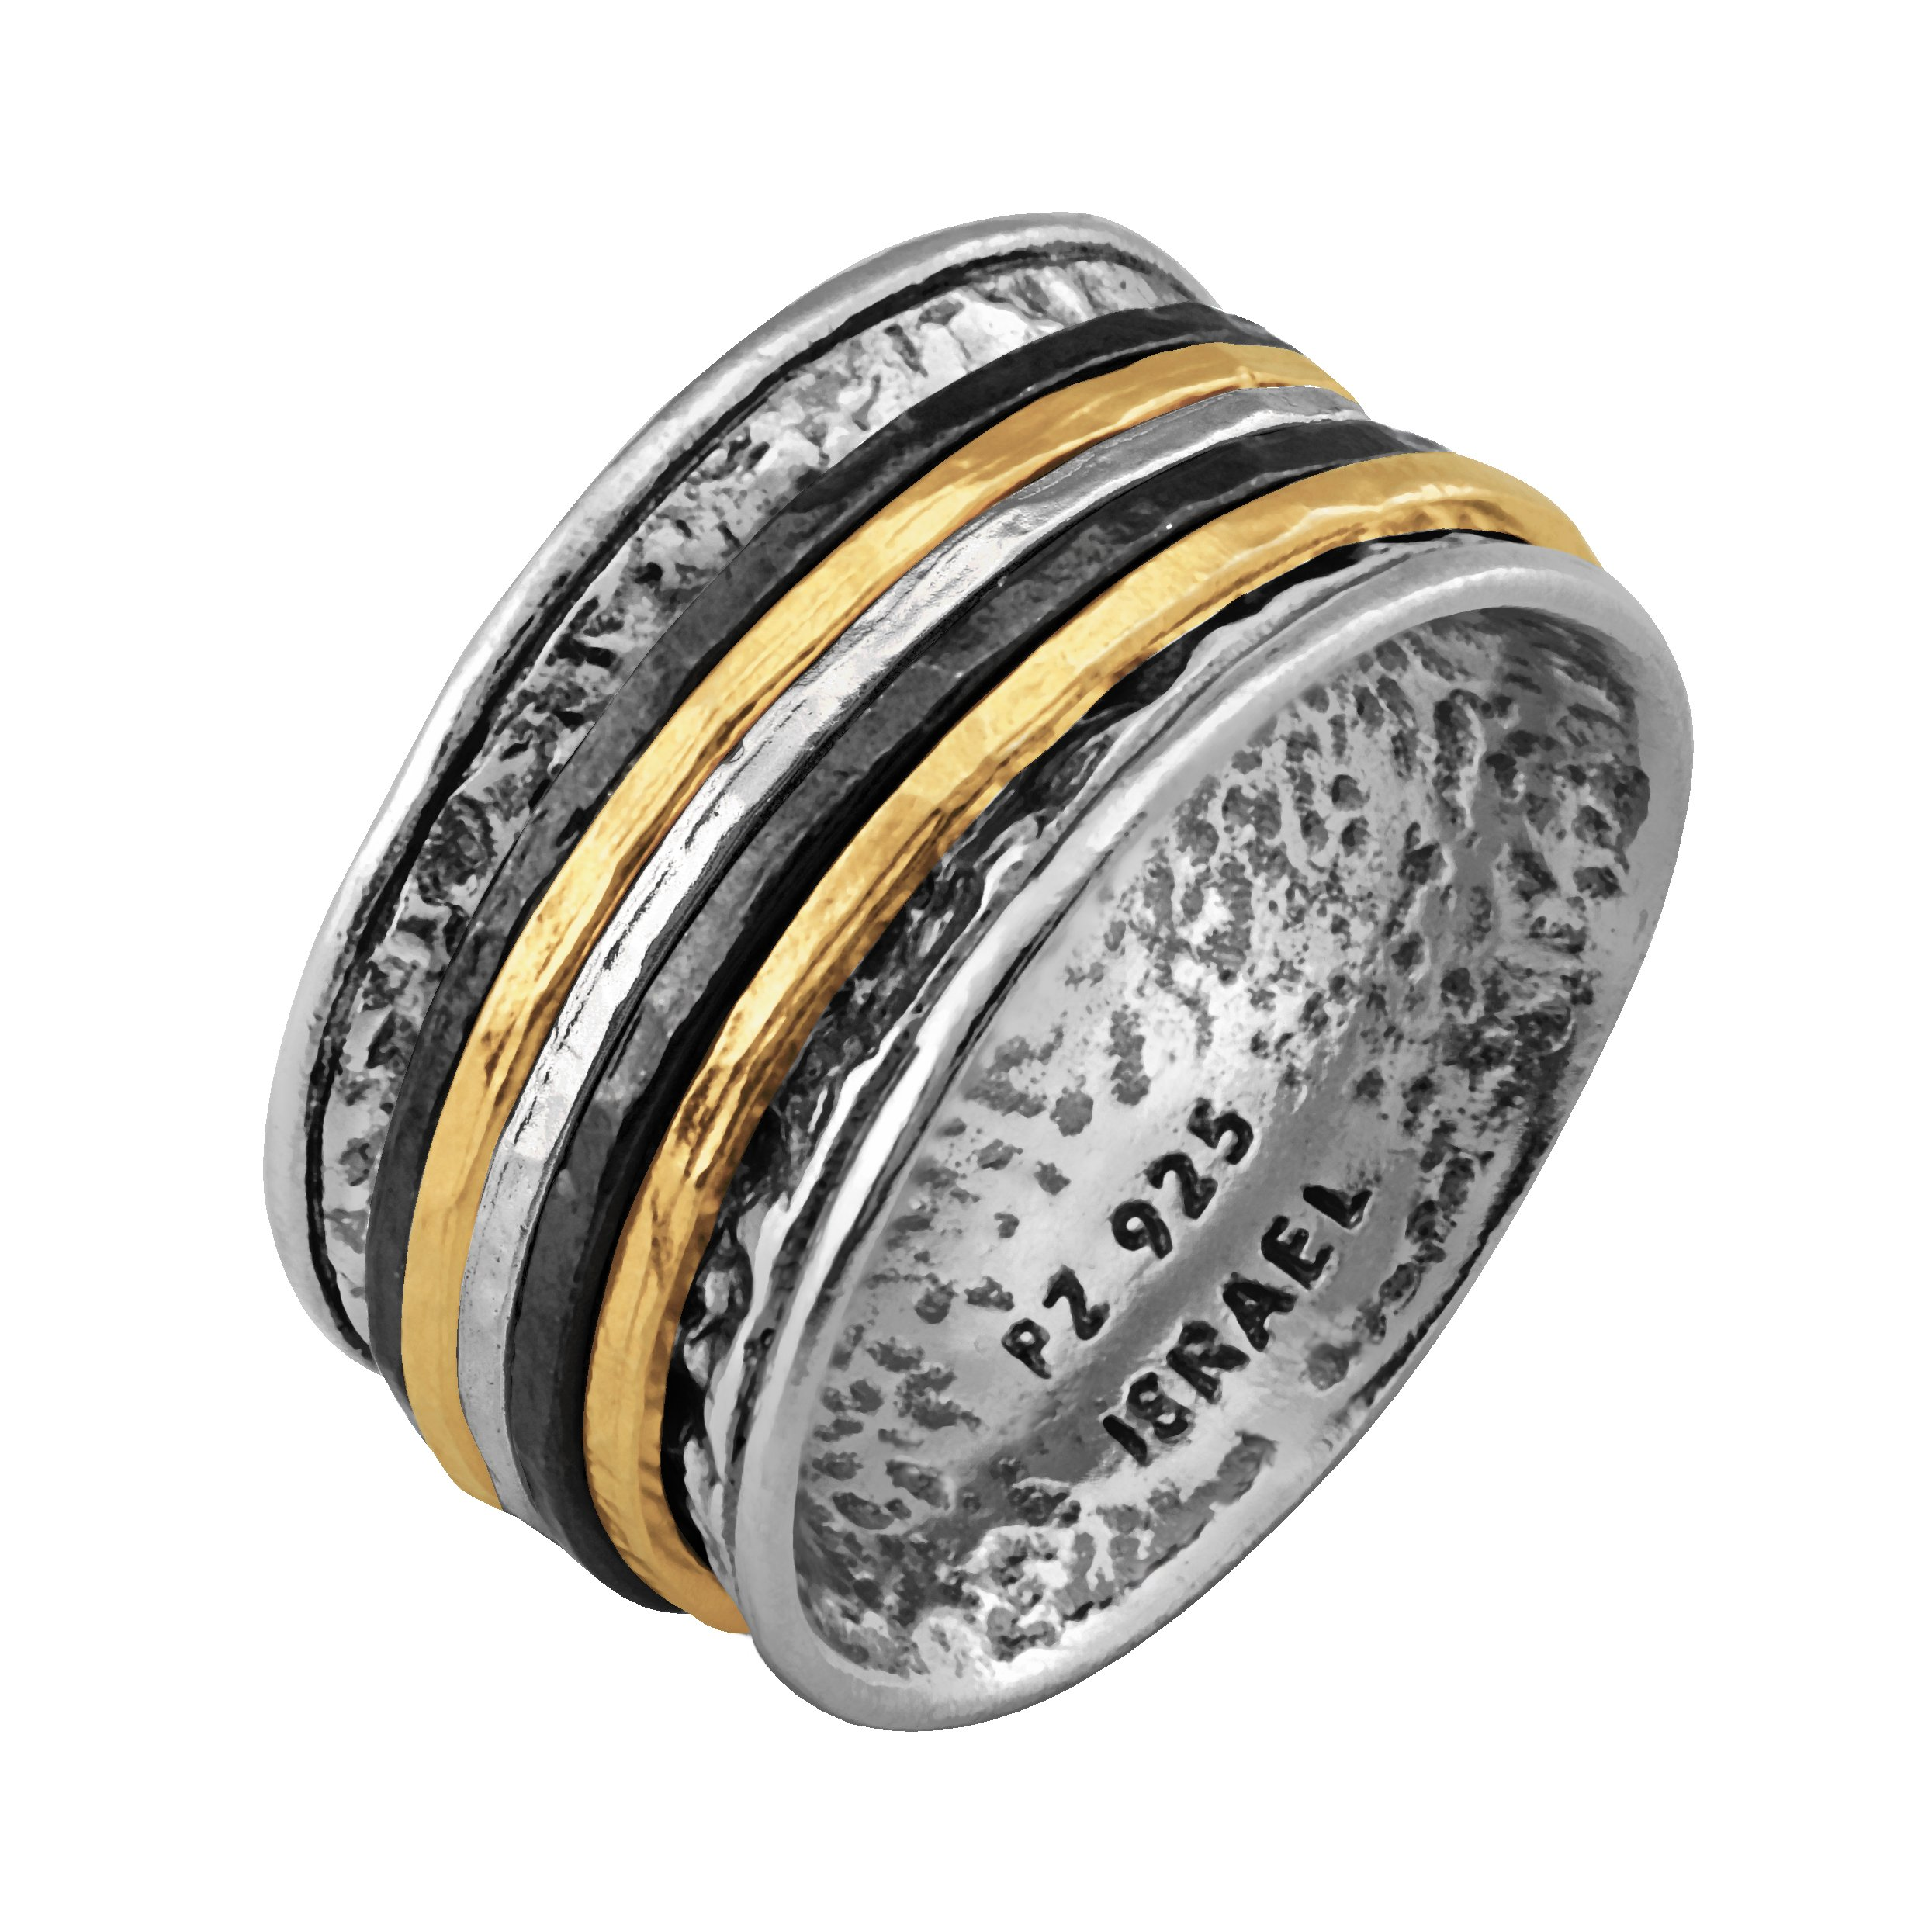 Paz Creations .925 Sterling Silver Ring With Gold Over Silver And Black Rhodium Spinners, Made in Israel (9)